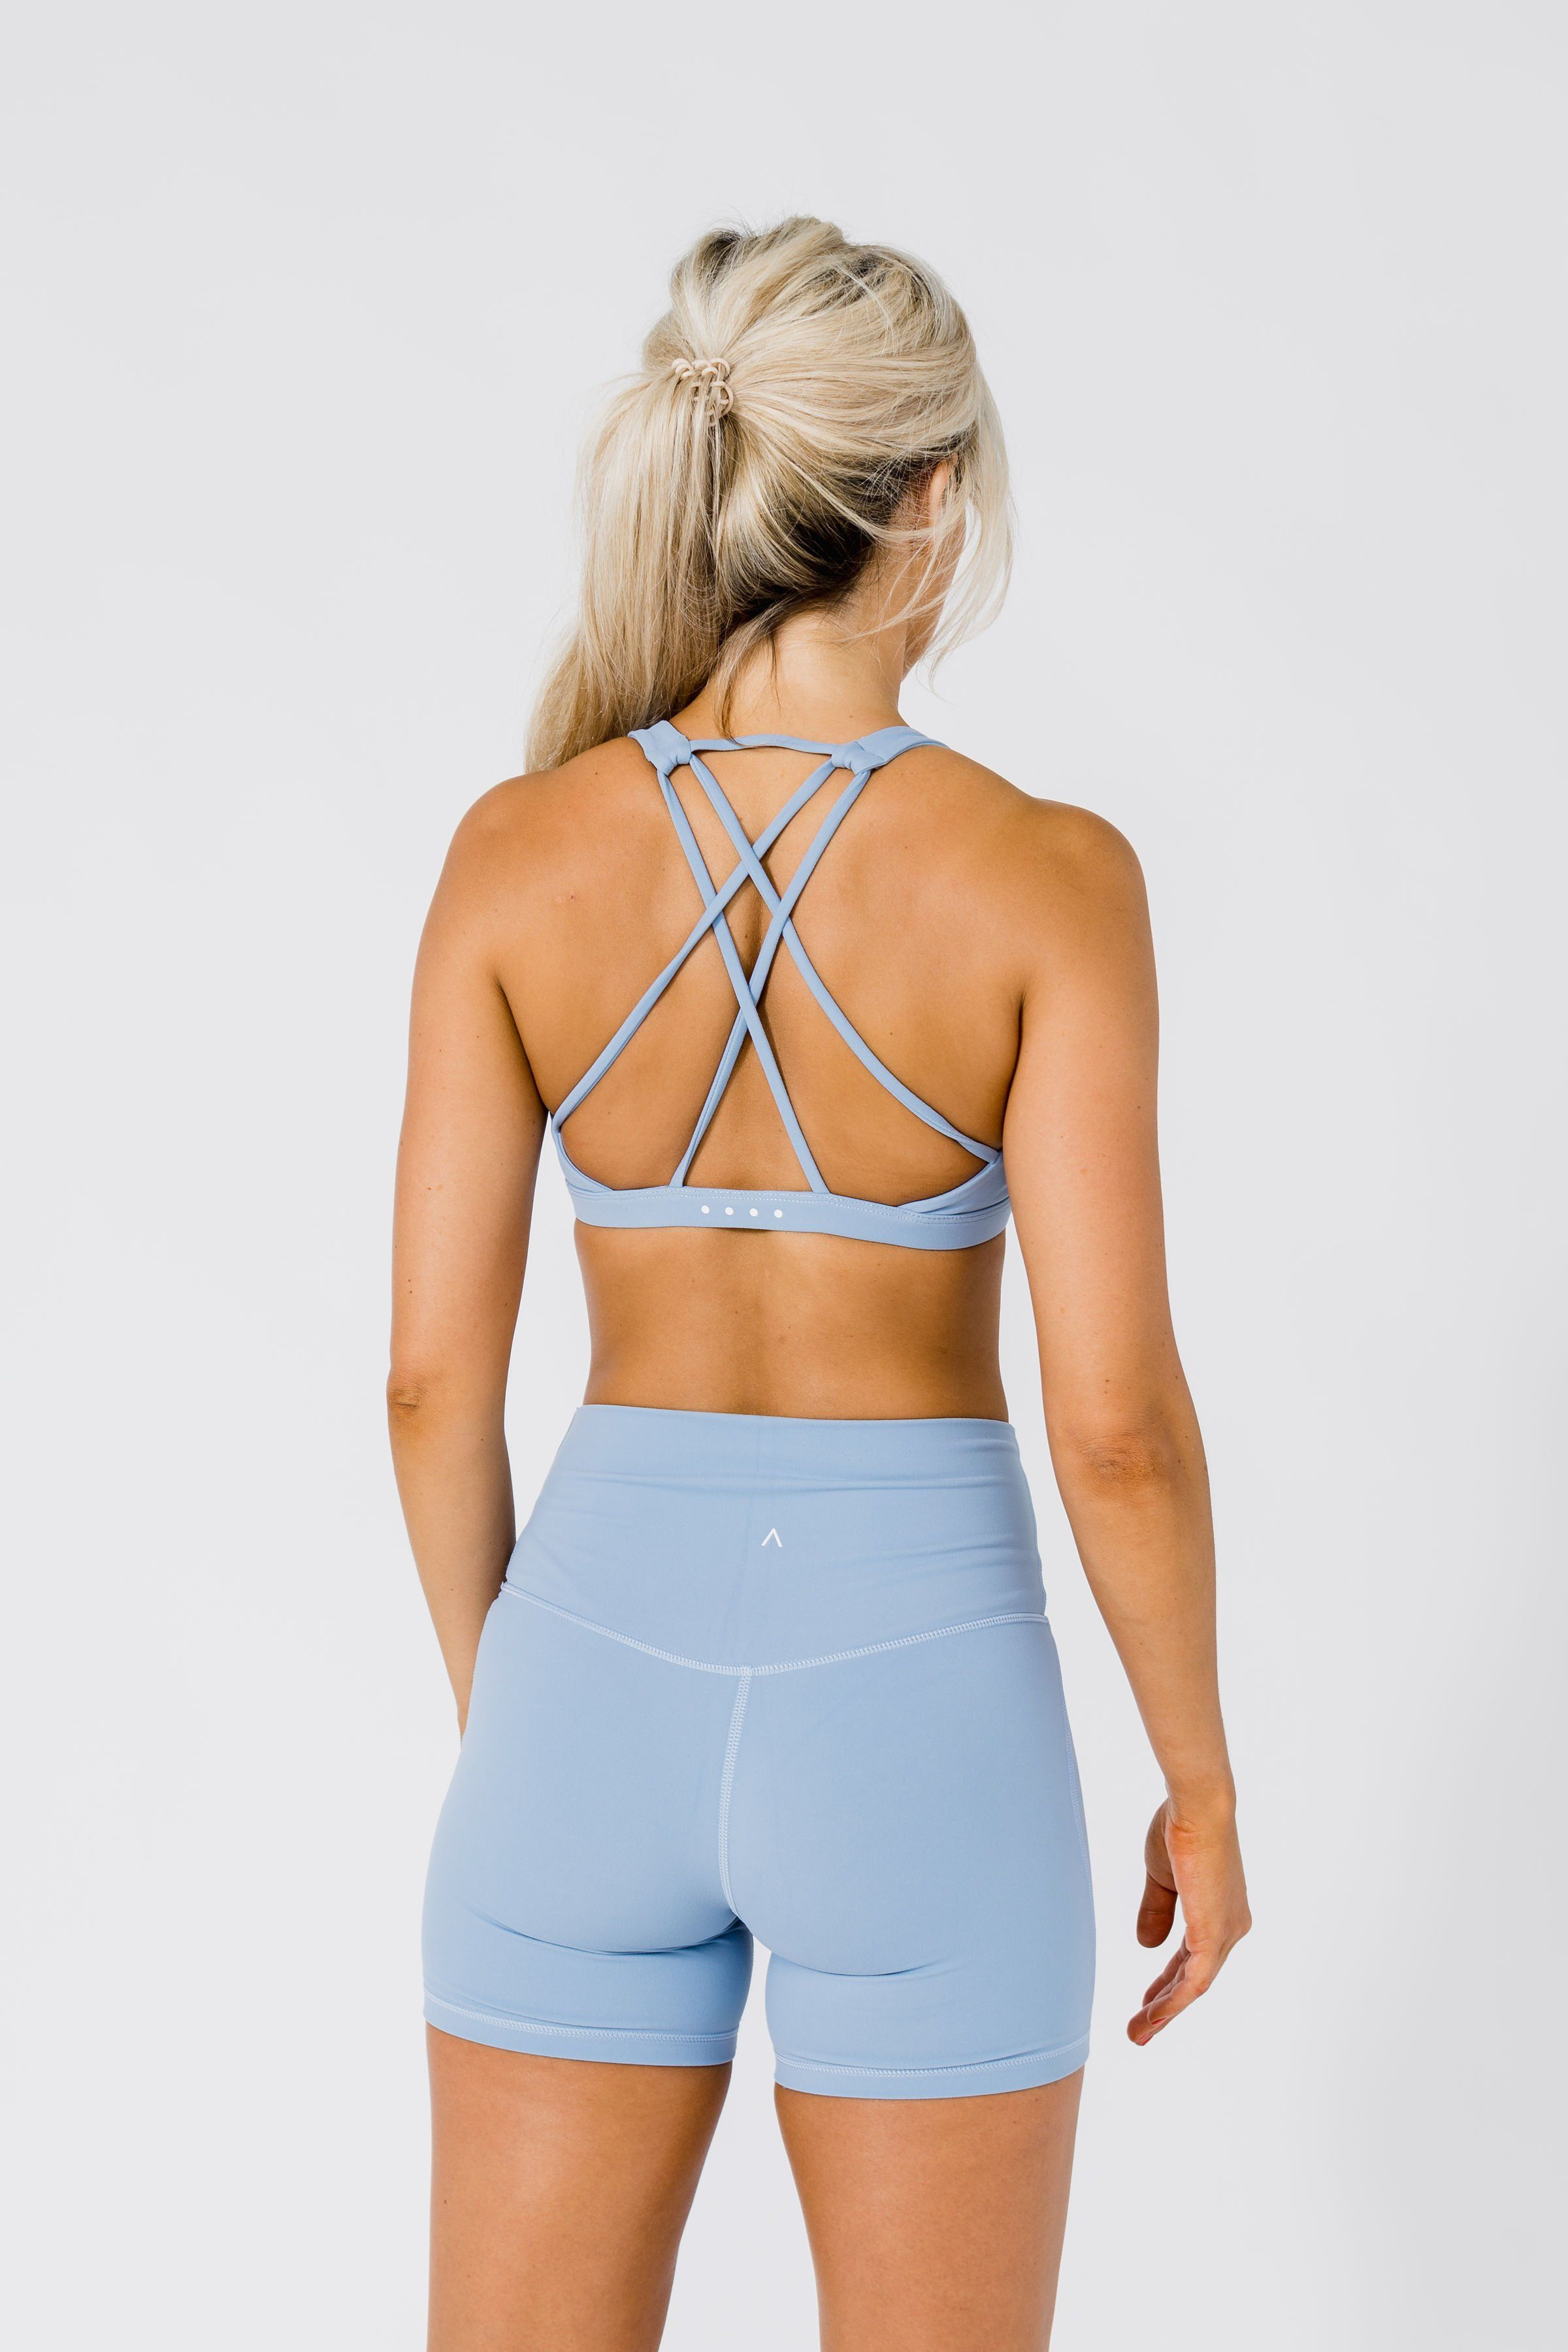 woman seen from theback with grey workout apparel